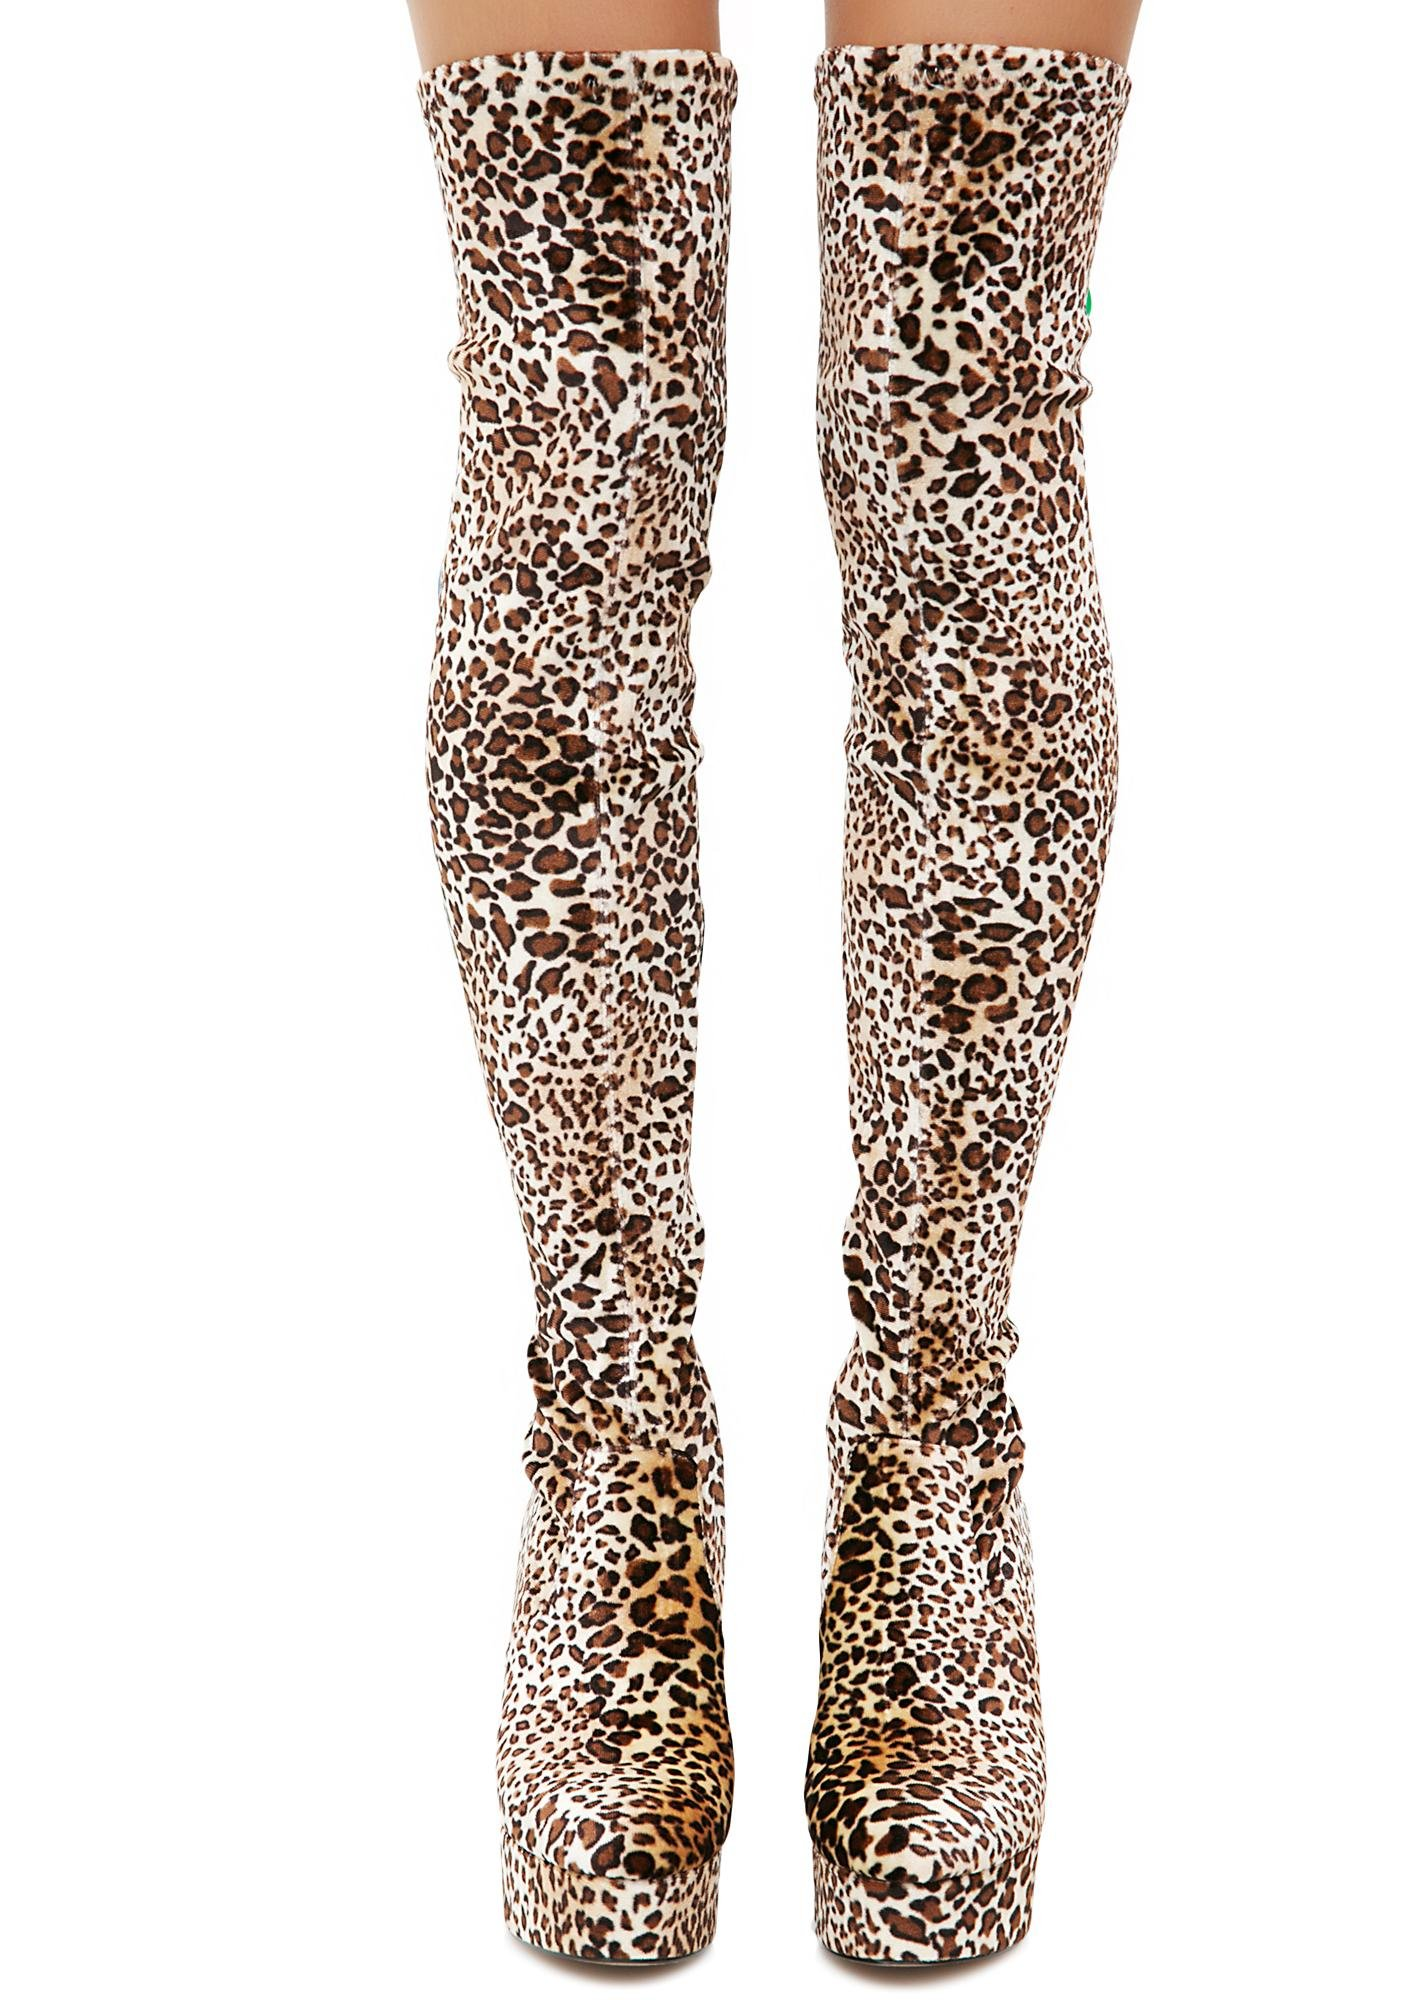 Shellys London Leopard Thigh High Boots